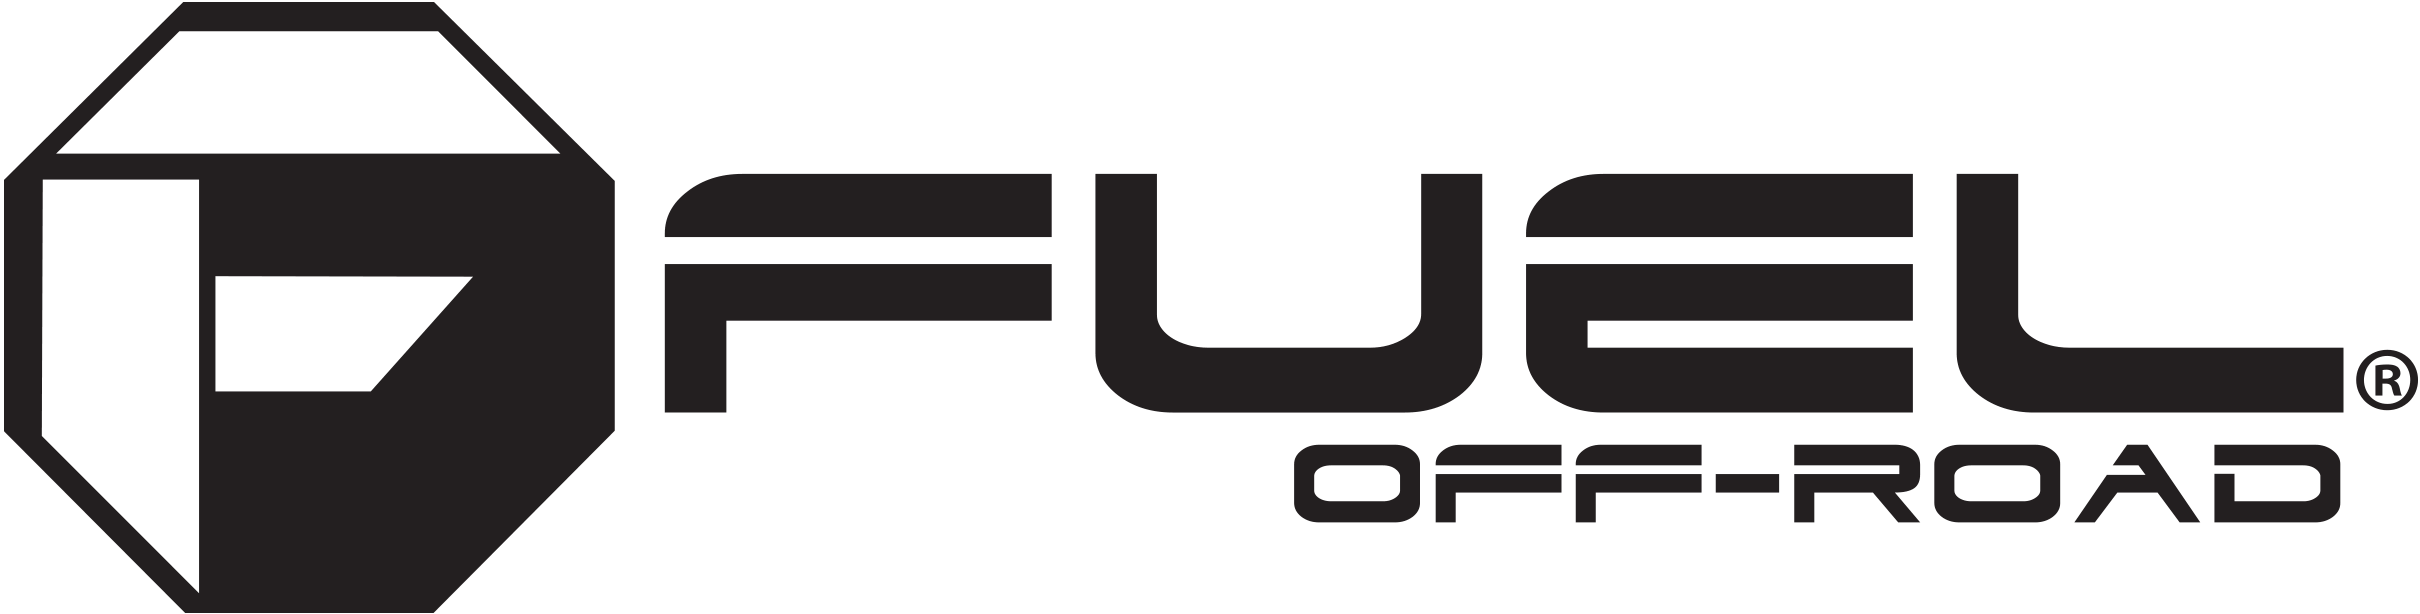 Fuel-Off-Road-Tires-logo-3000x1000 (1)